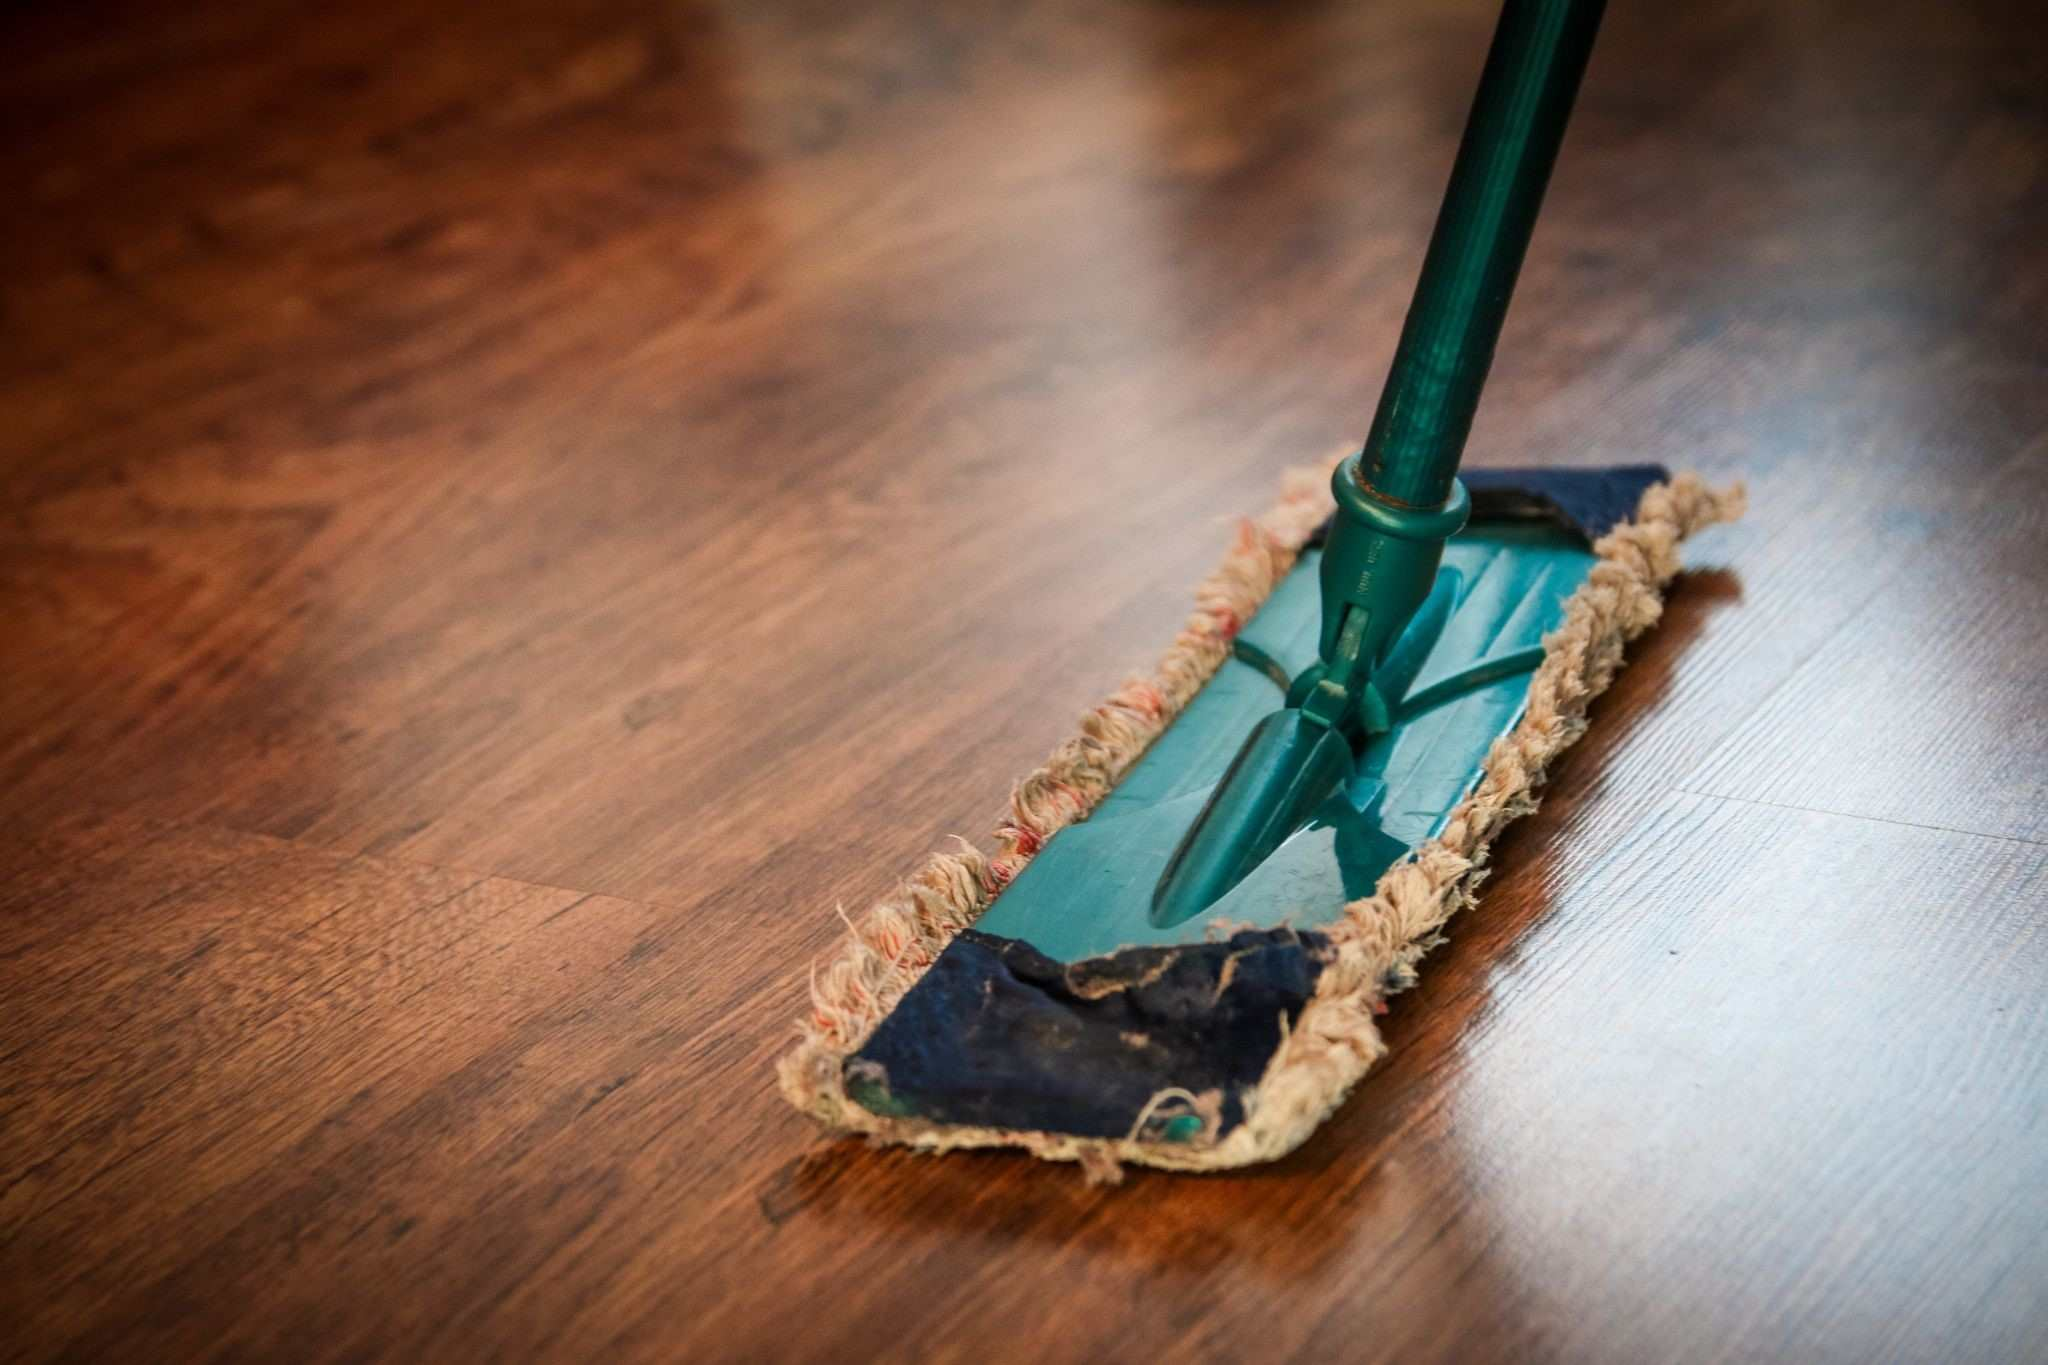 image - 7 Easy Ways to Clean Different Types of Floors